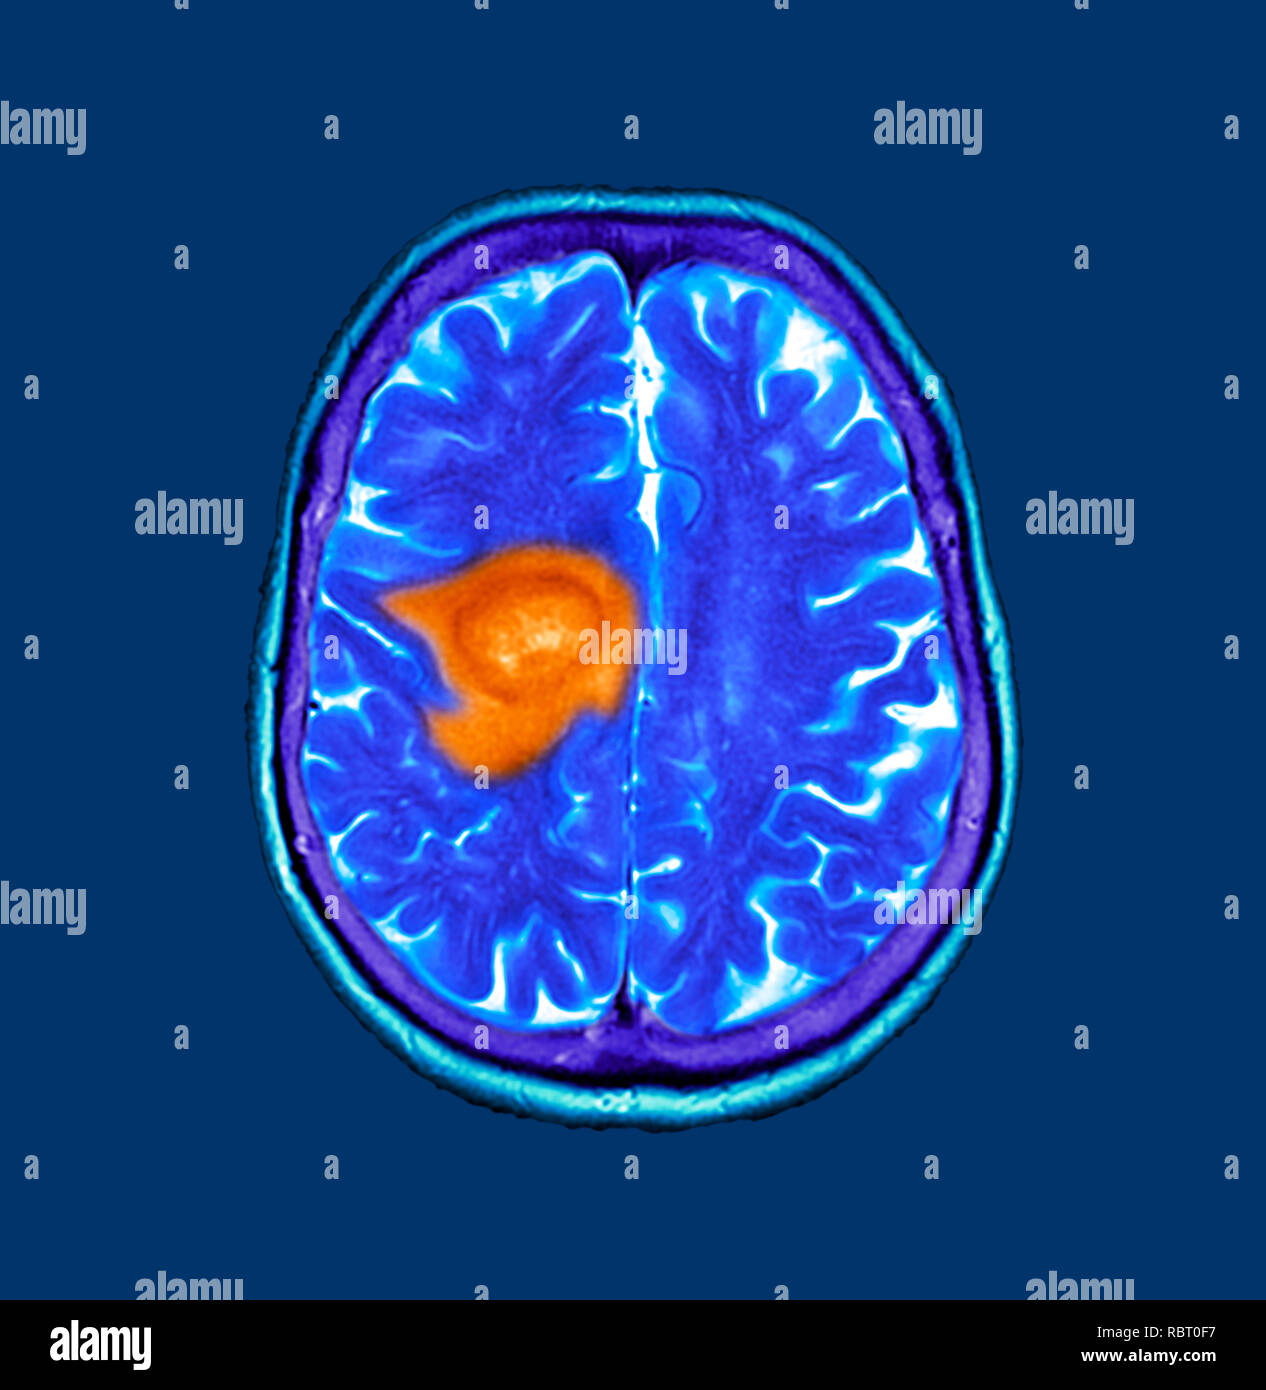 Glioblastoma brain cancer. Coloured computed tomography (CT) scan of a section through the brain of an 84-year-old female patient with glioblastoma (dark, left). Glioblastoma is the most aggressive form of brain cancer. Treatment involves surgery, after which chemotherapy and radiation therapy are used. However, the cancer usually reoccurs despite treatment and the most common length of survival after diagnosis is 12-15 months. Without treatment, survival is typically 3 months. - Stock Image